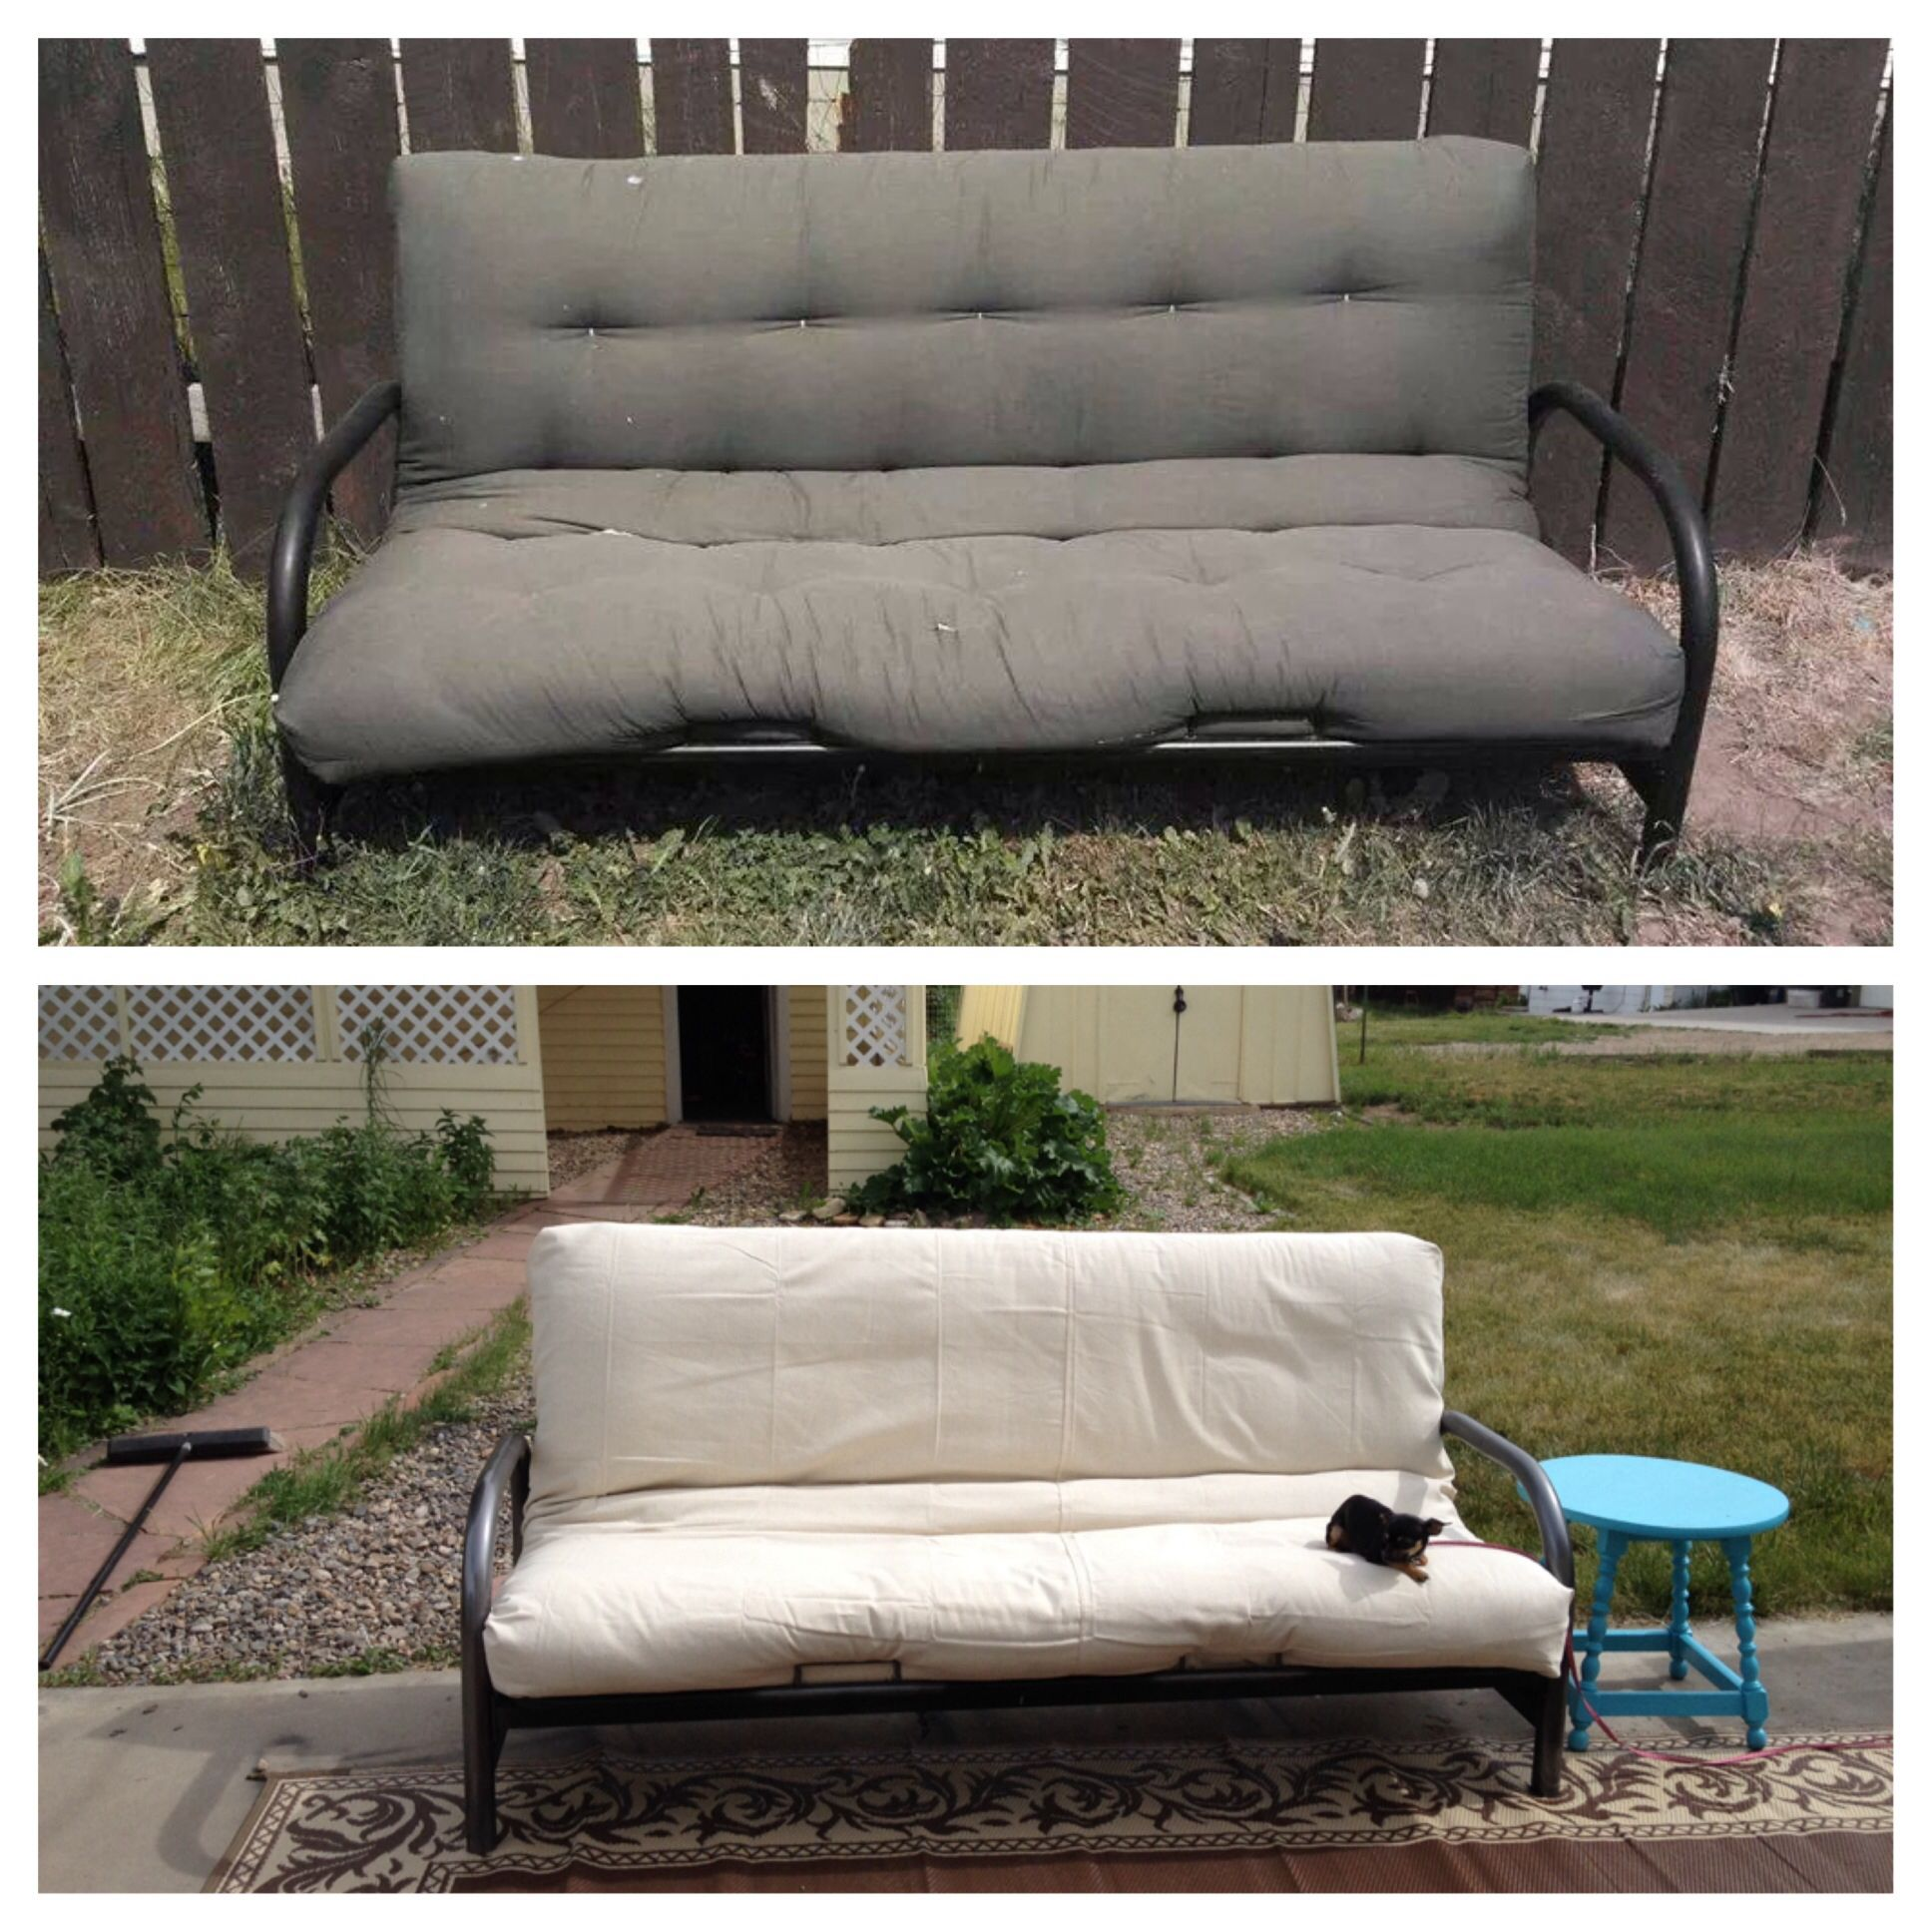 Bought This Old Futon For Patio For 15 And Recovered It With Painters Tarp And Just Safety Pinned It To The Back Easy Waterpro Outdoor Futon Diy Futon Futon